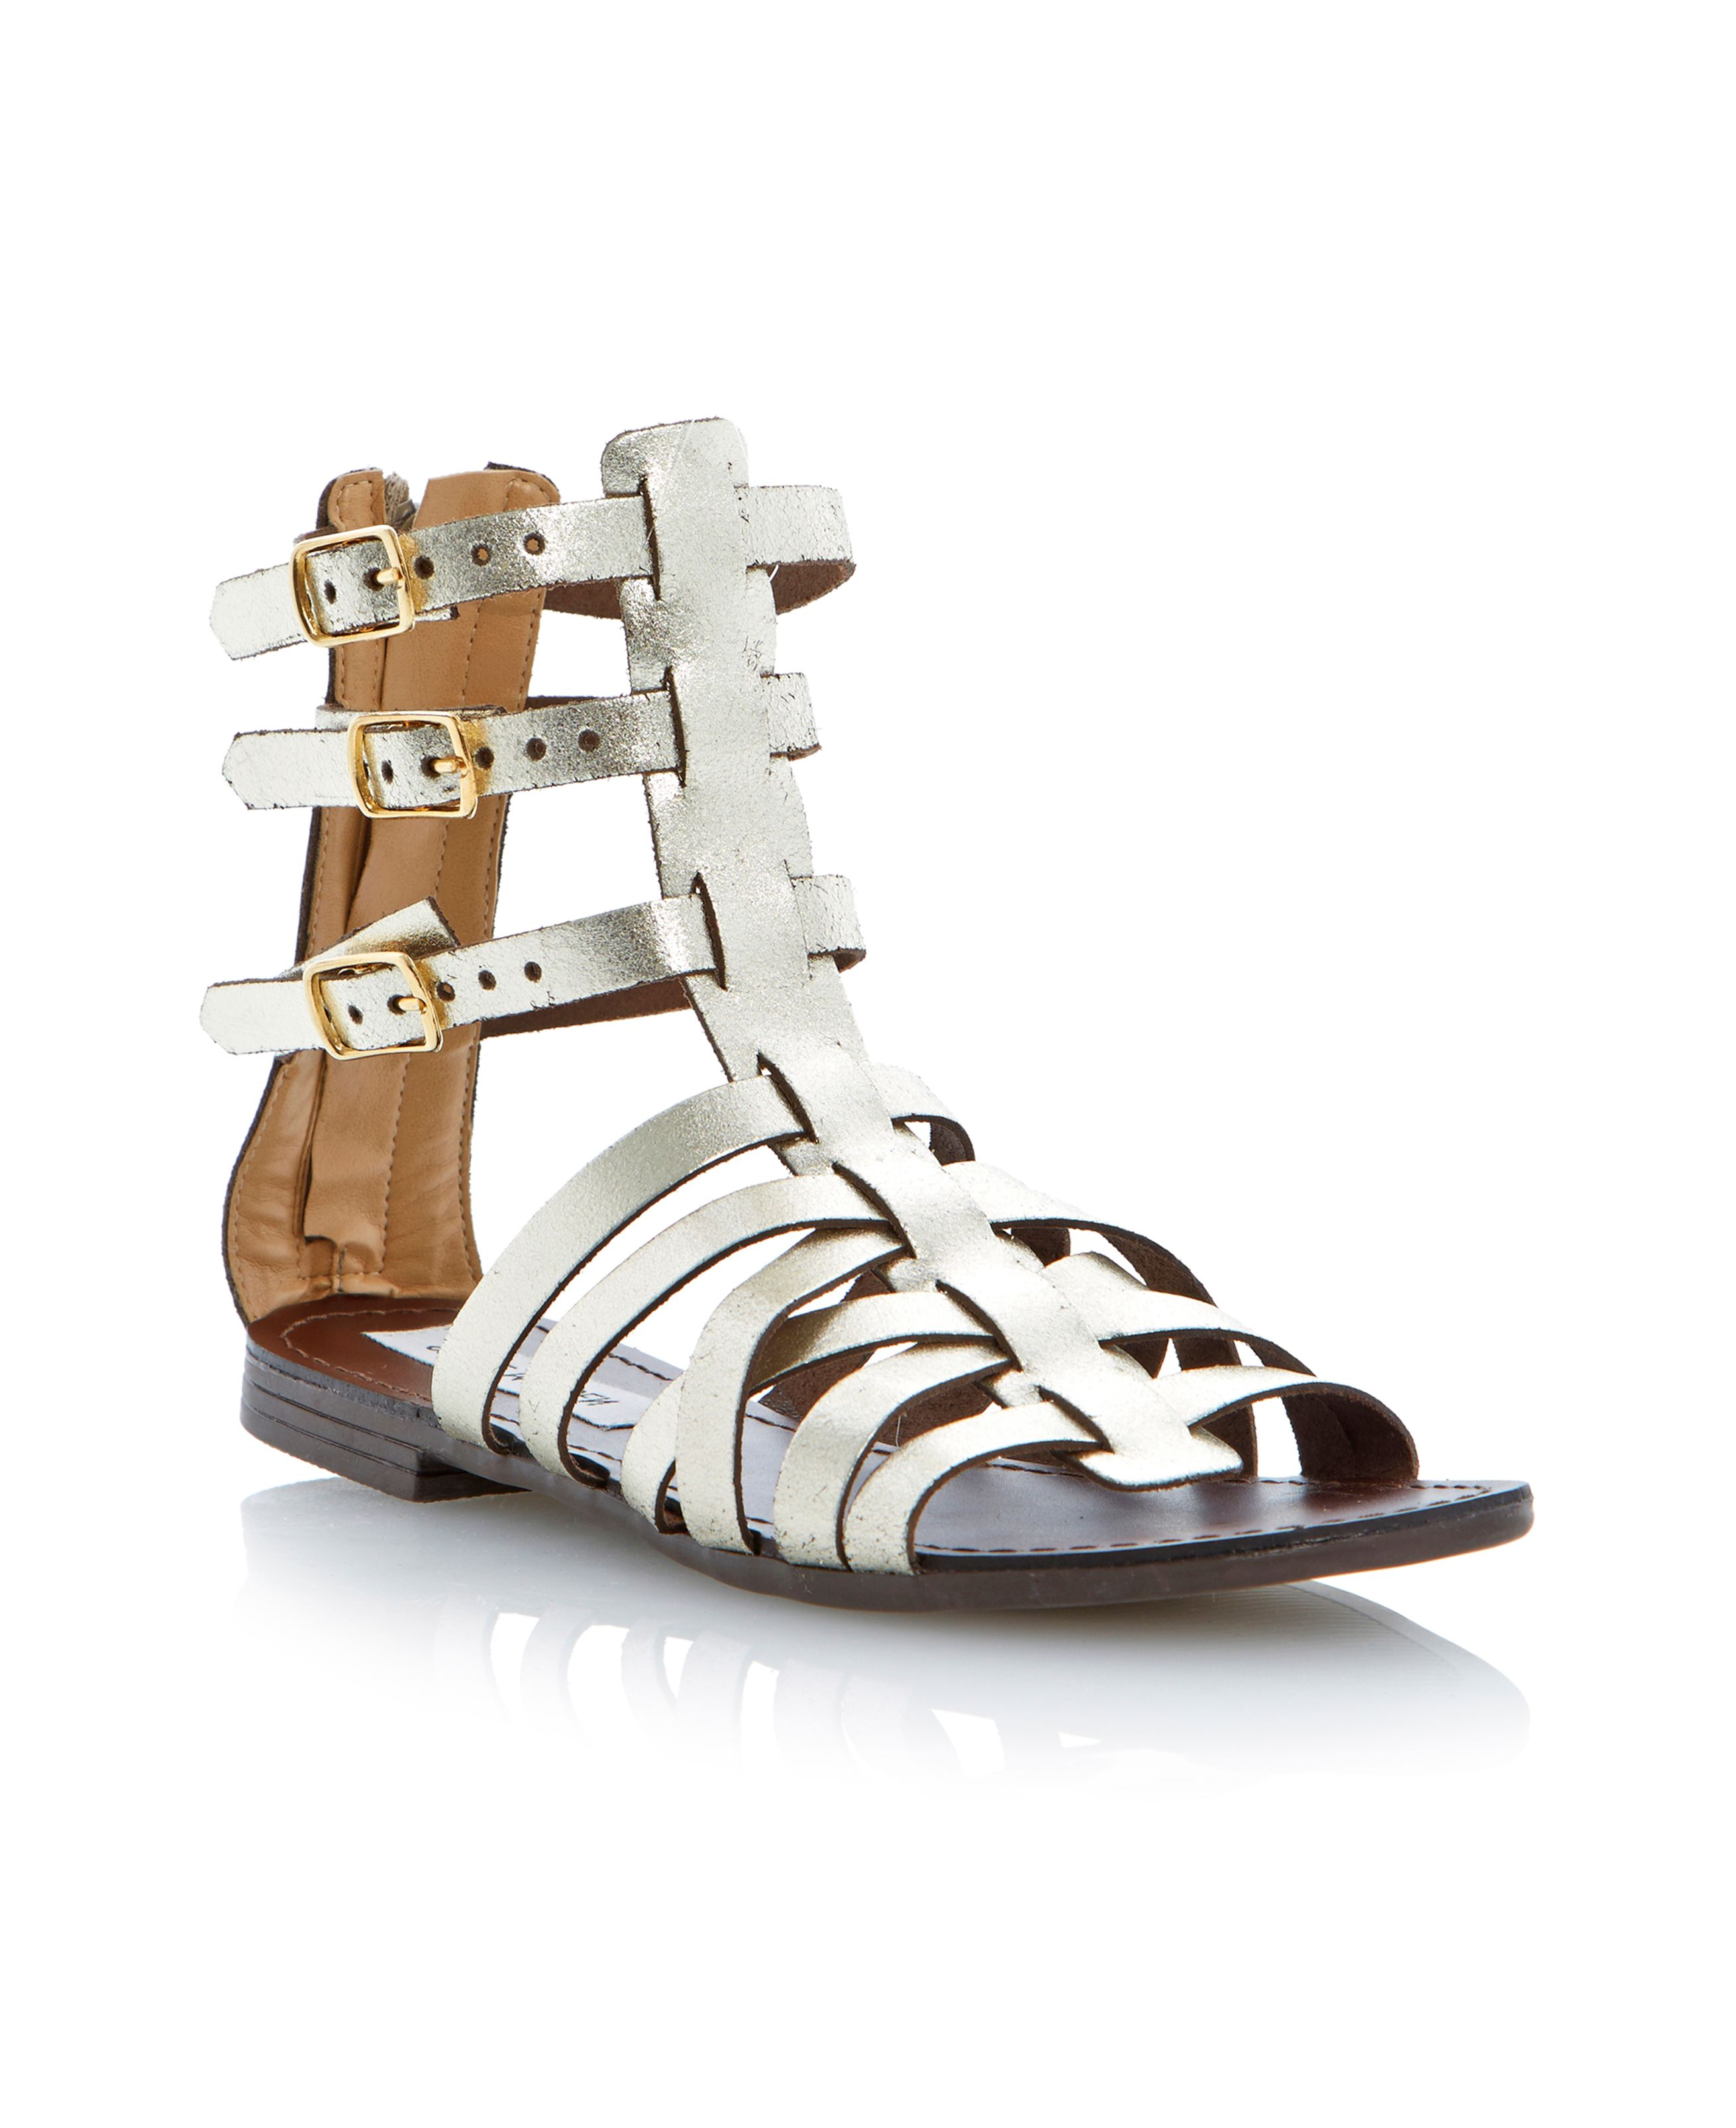 Plato ankle gladiator sandals